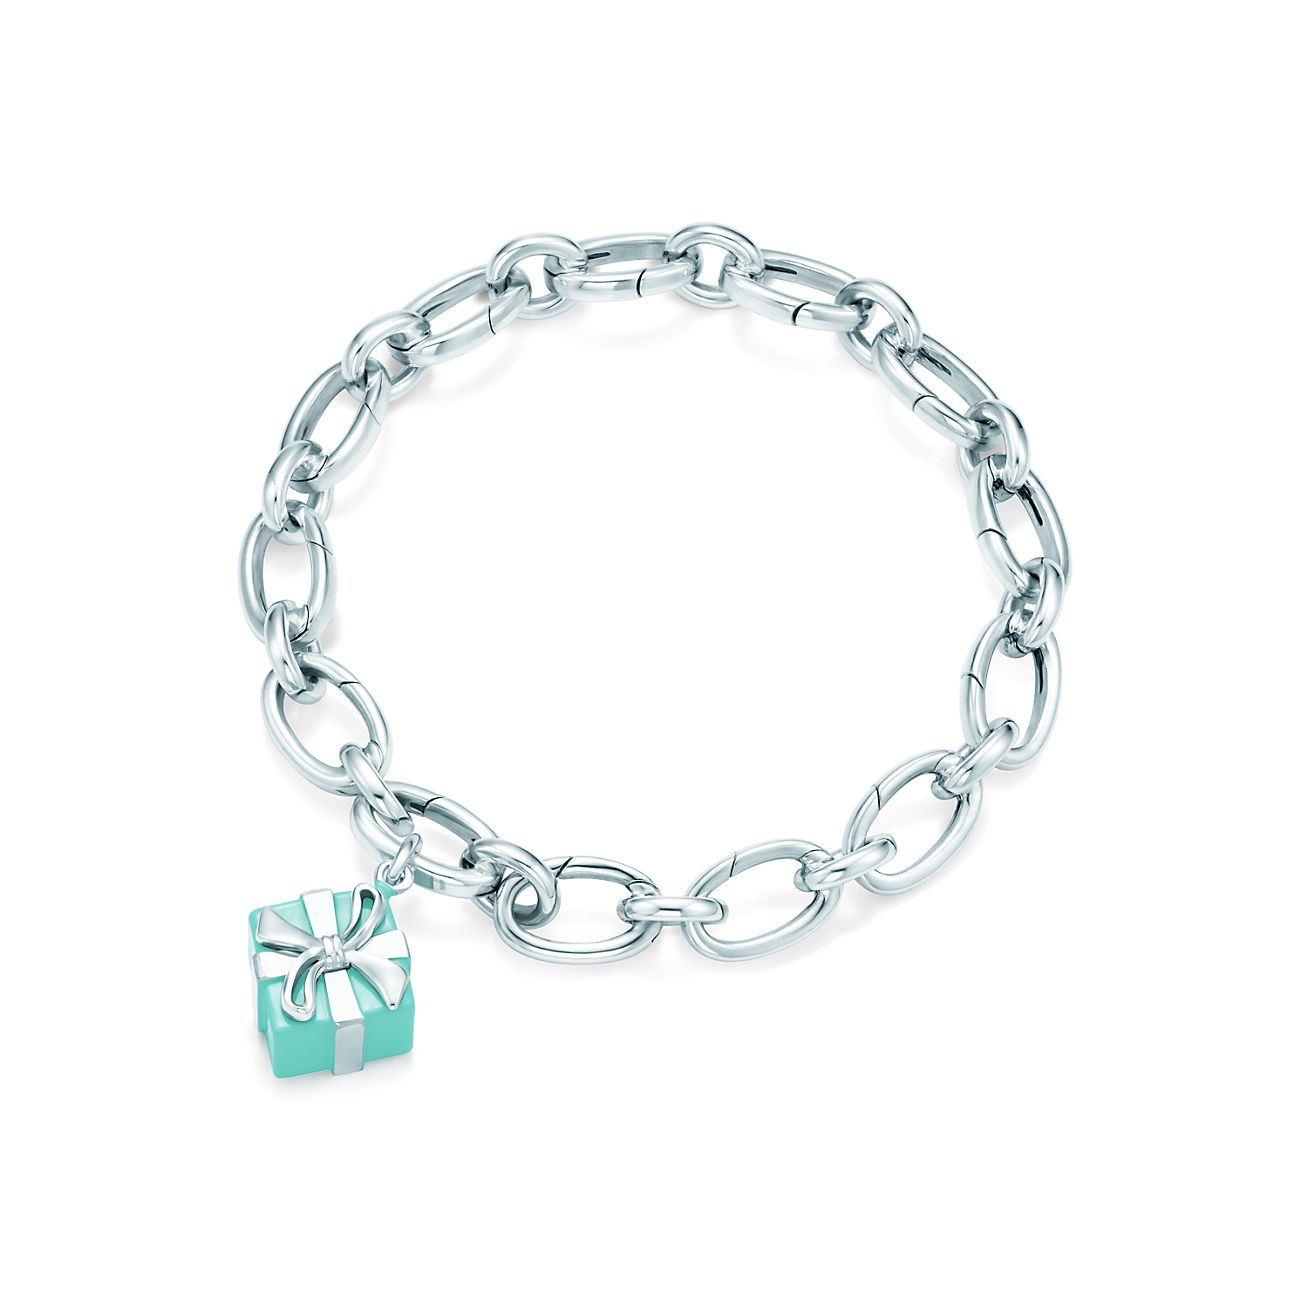 1 chain bracelet for attaching charms